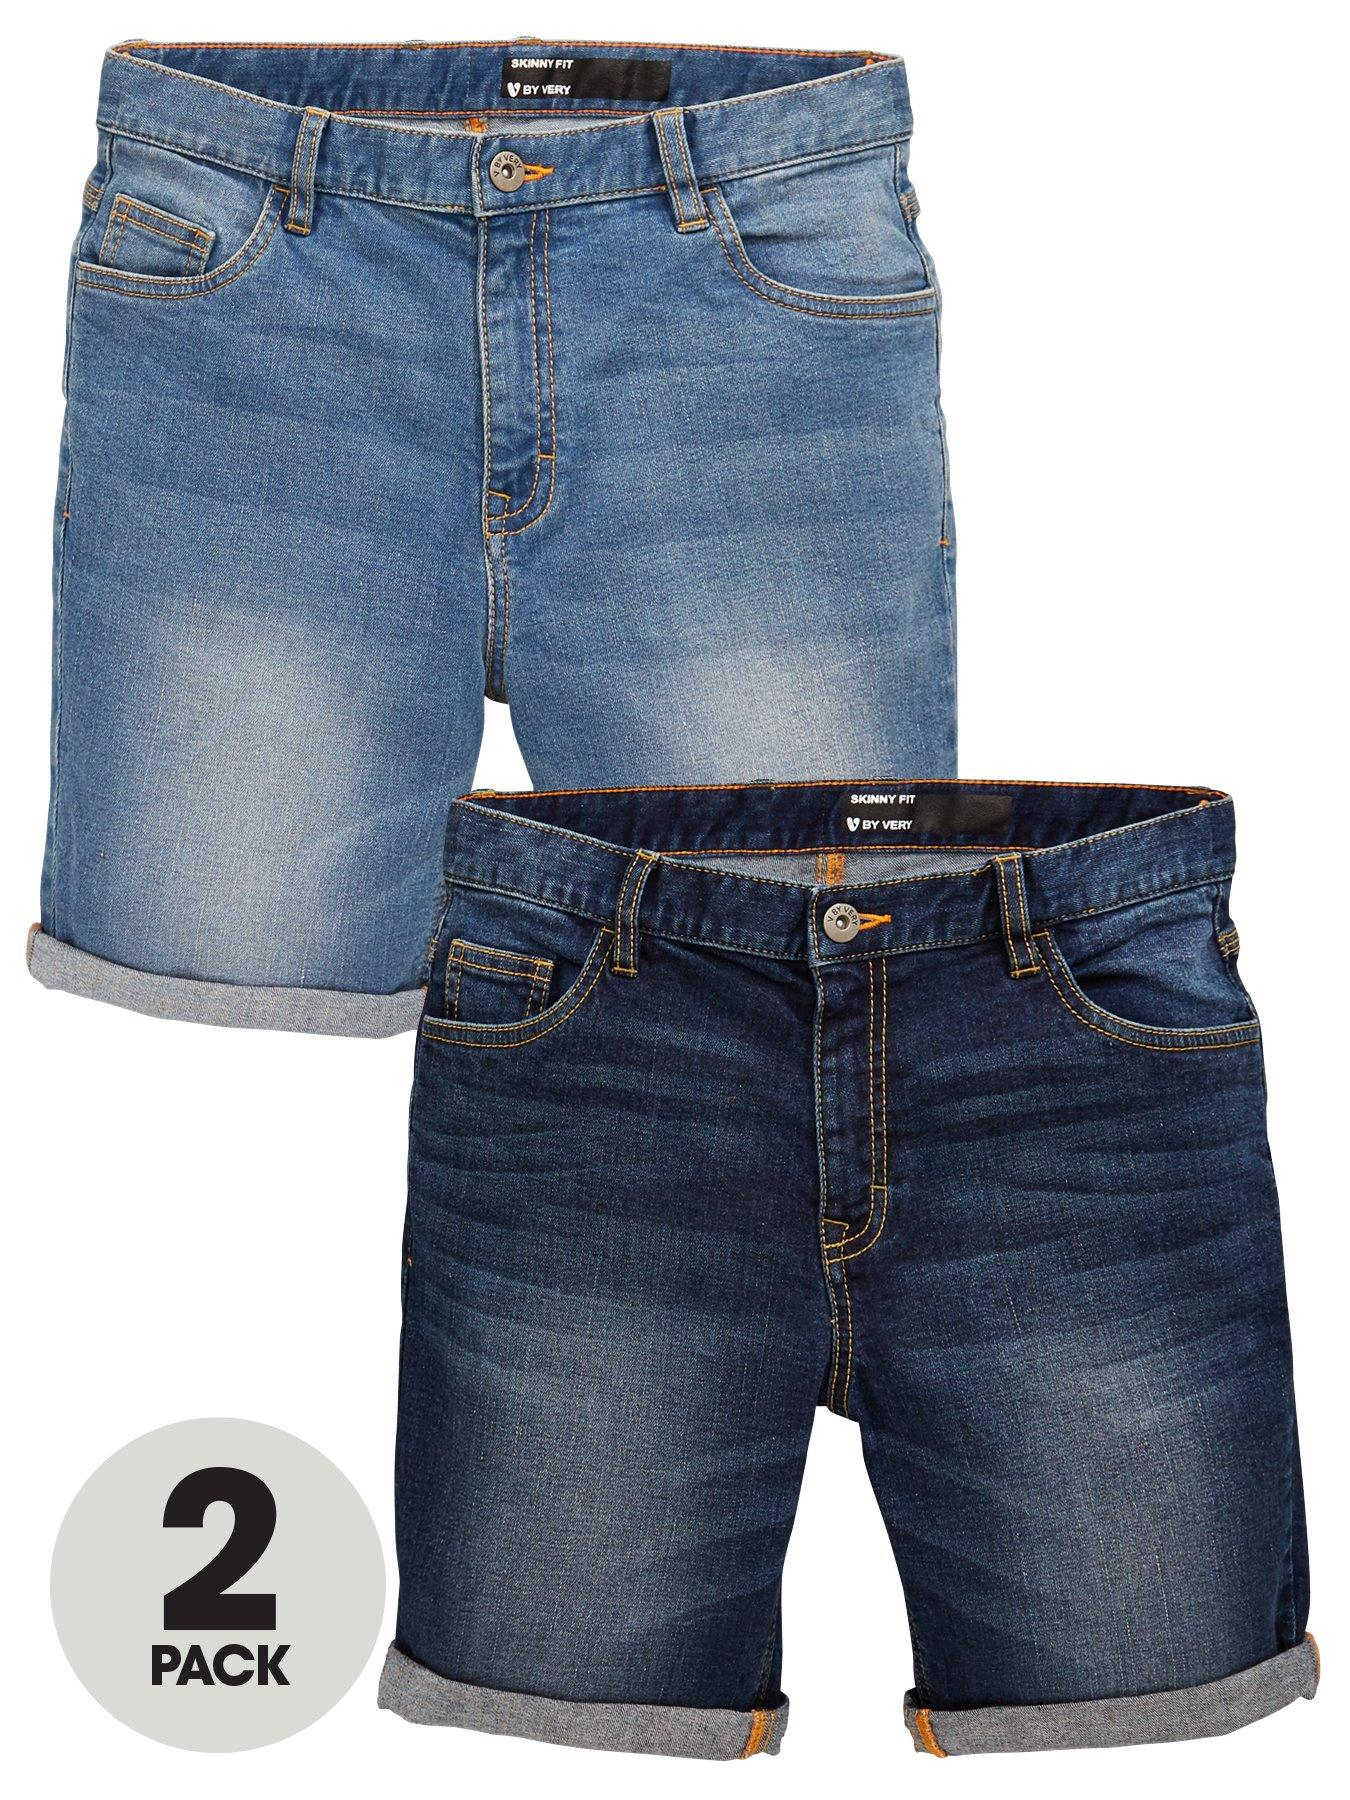 Able Ted Baker Jeans Toddler Boy Age 18-24 Sturdy Construction Baby & Toddler Clothing